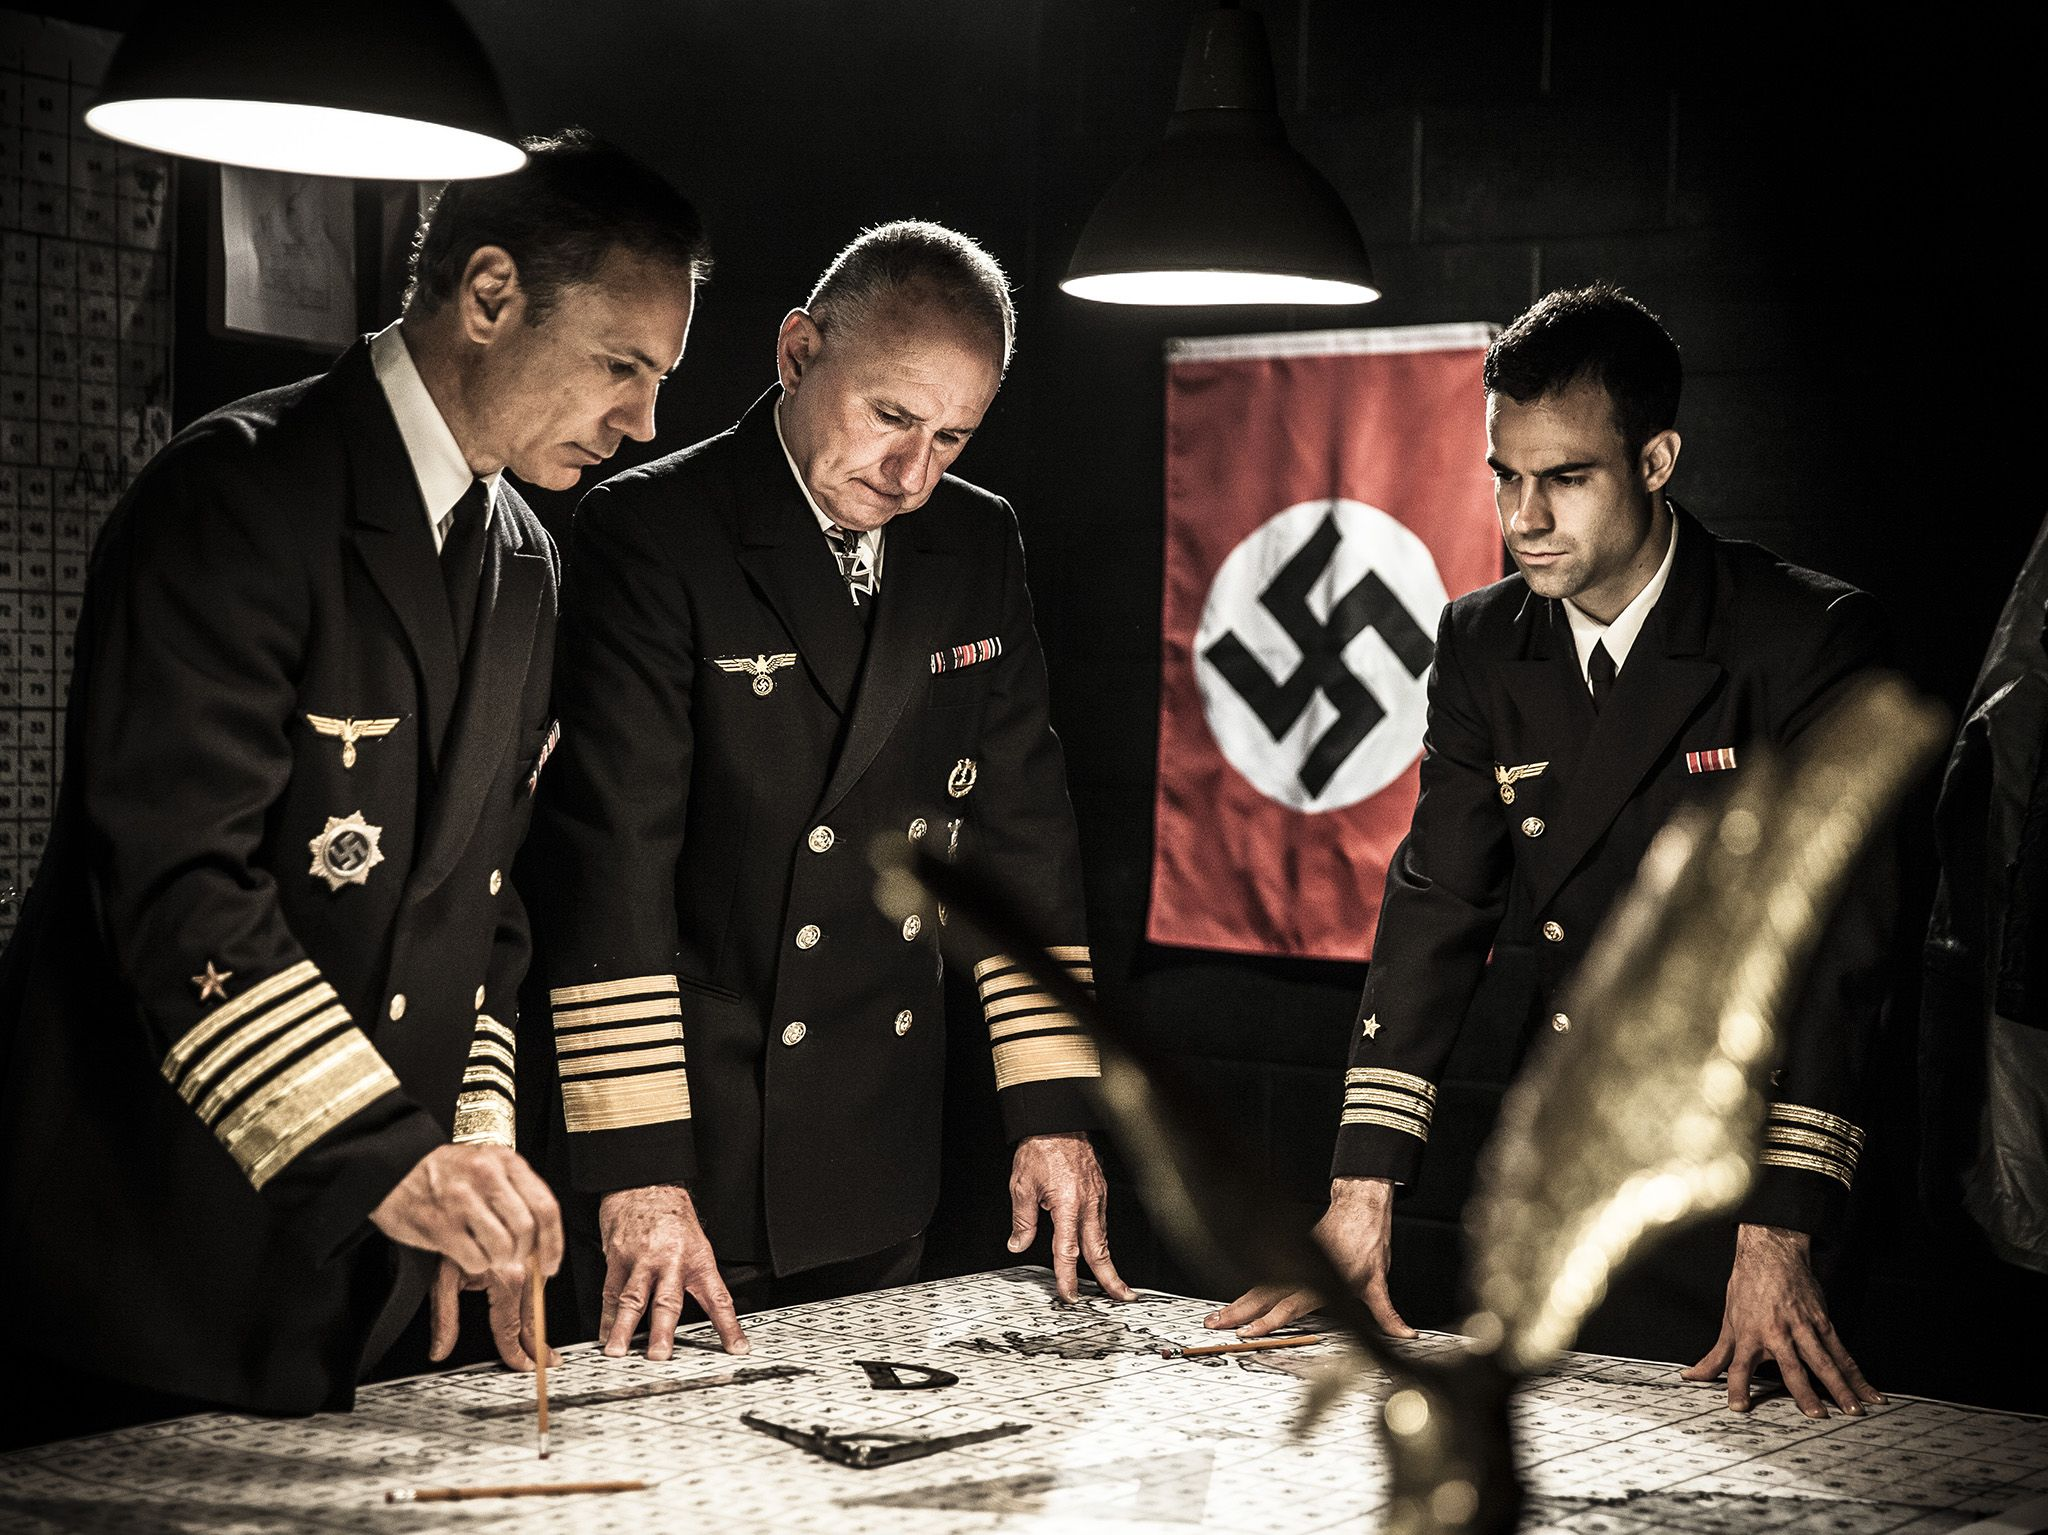 German officers planning their next move at HQ. Dramatic Recreation. (L-R) Apaul Snider, Lloyed... [Photo of the day - May 2018]